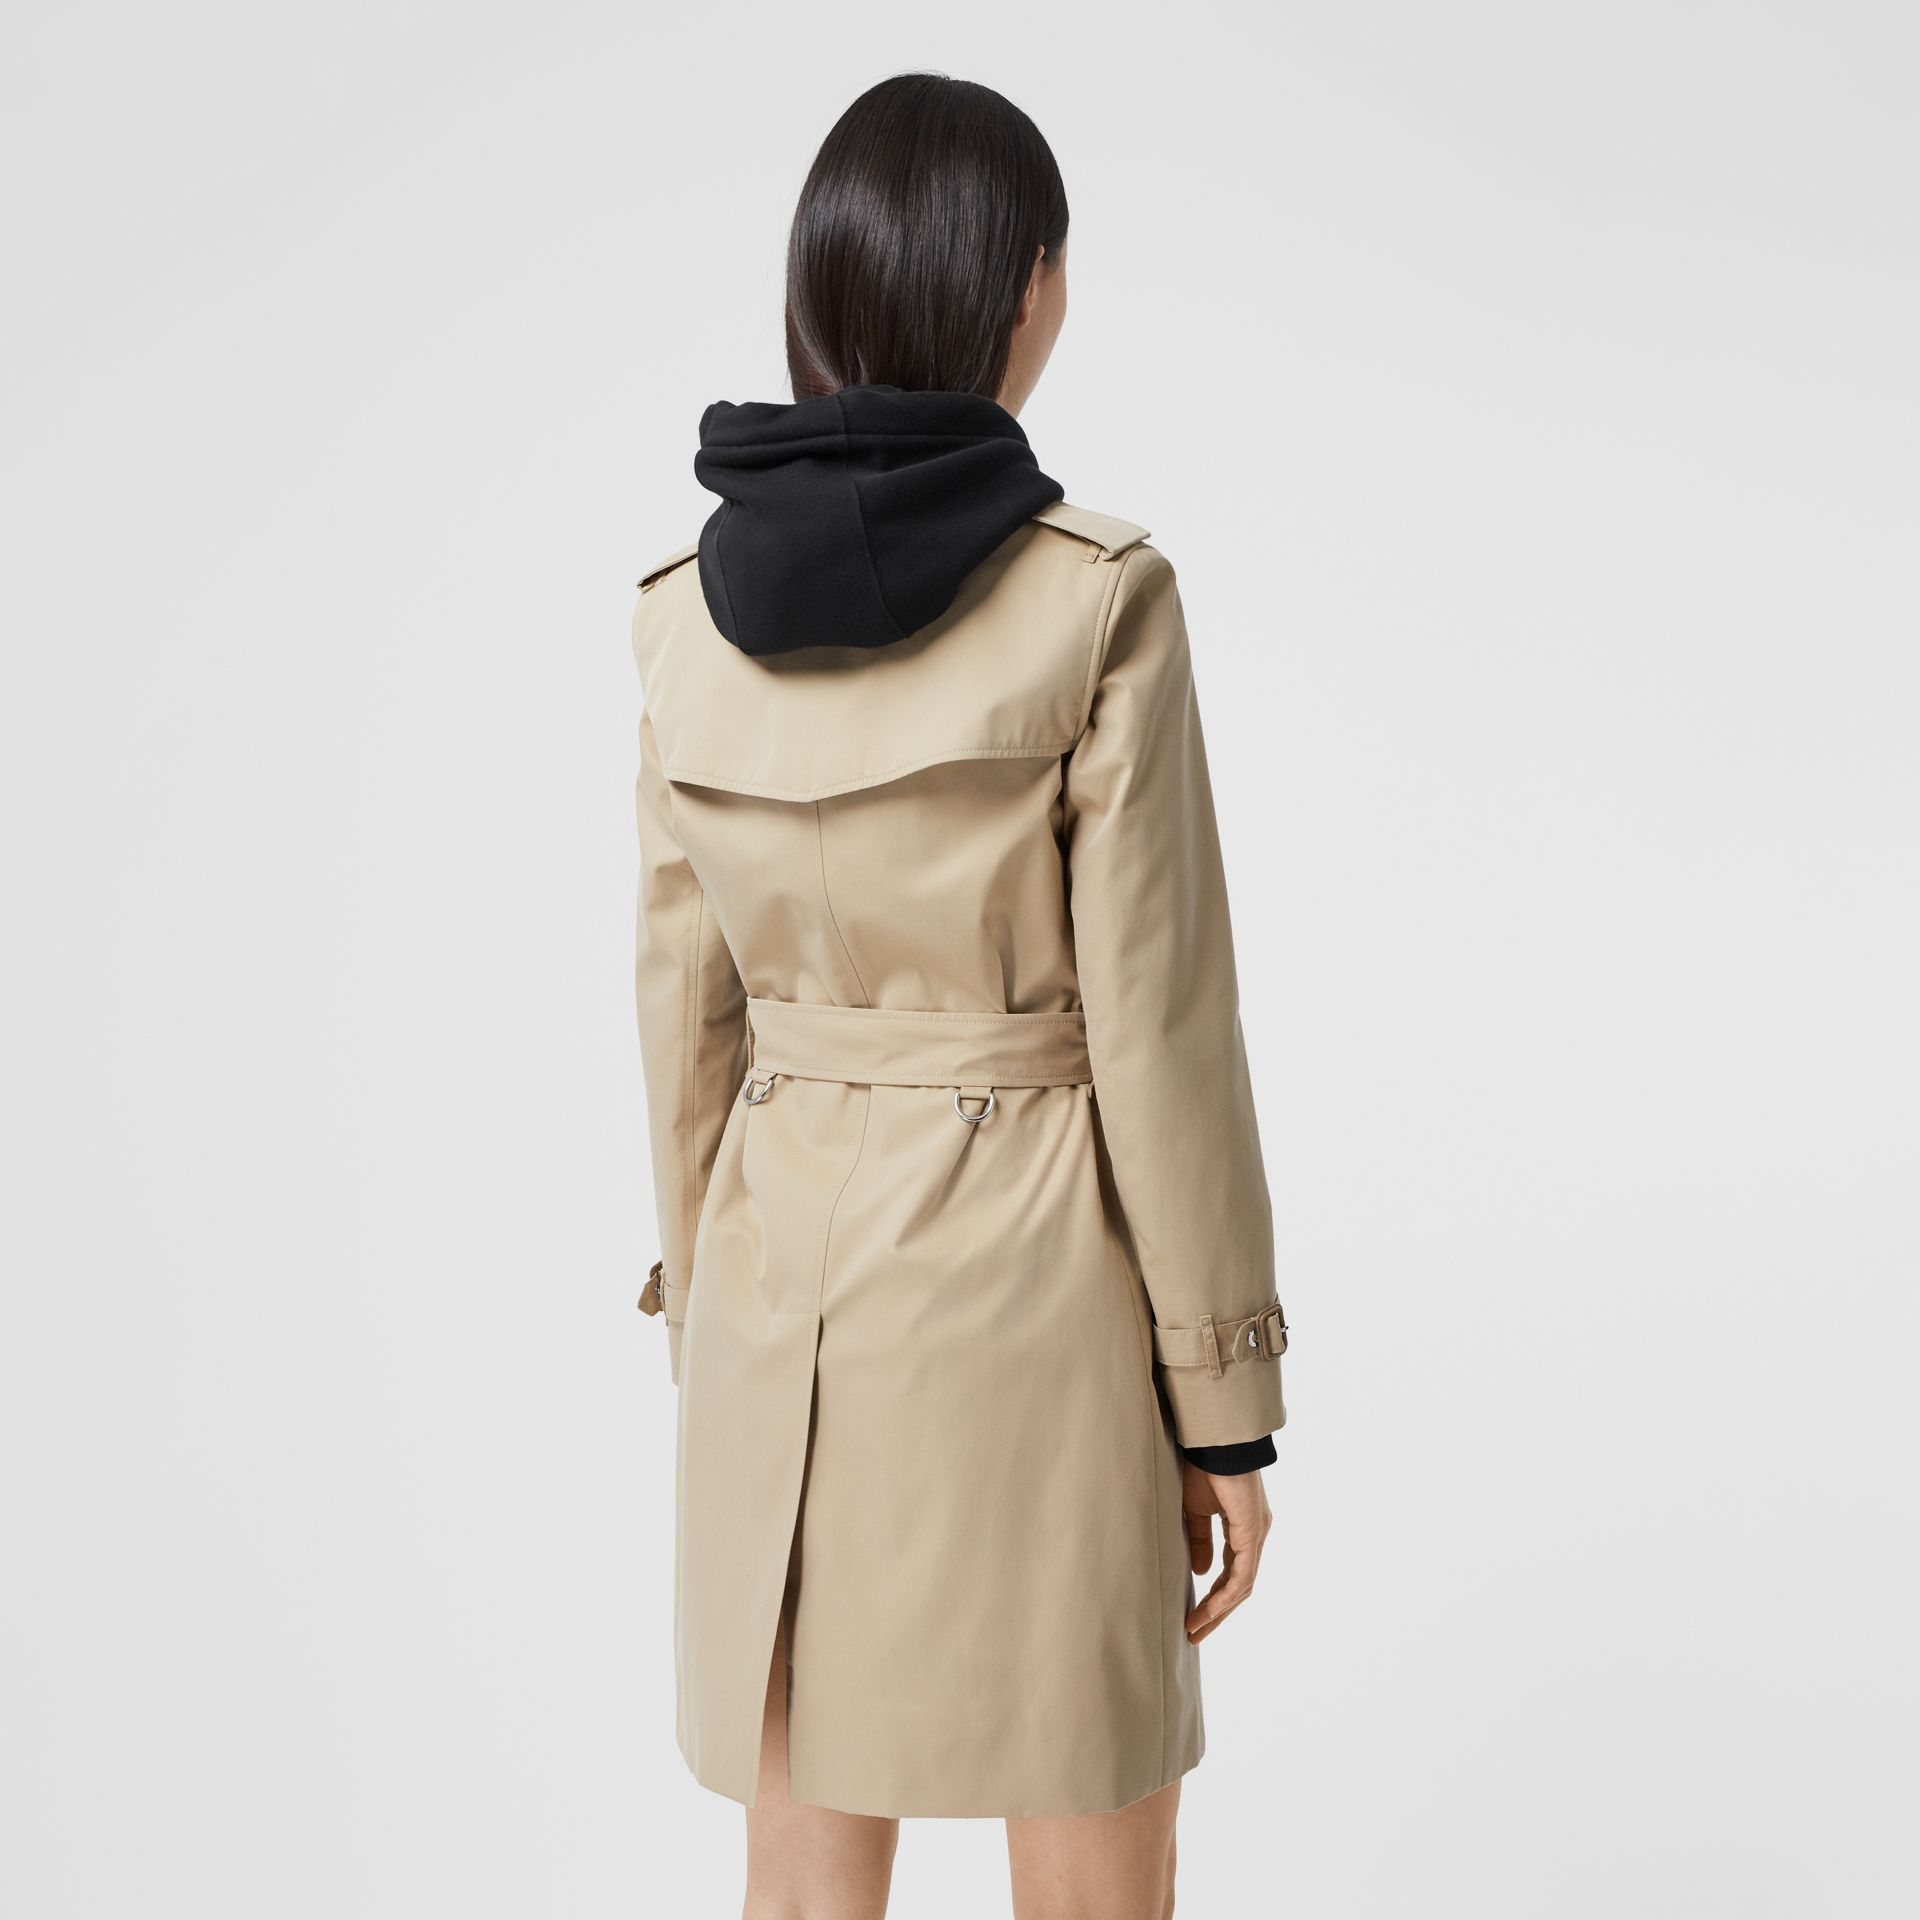 Watercolour Print-lined Cotton Gabardine Trench Coat in Honey - Women | Burberry - gallery image 2